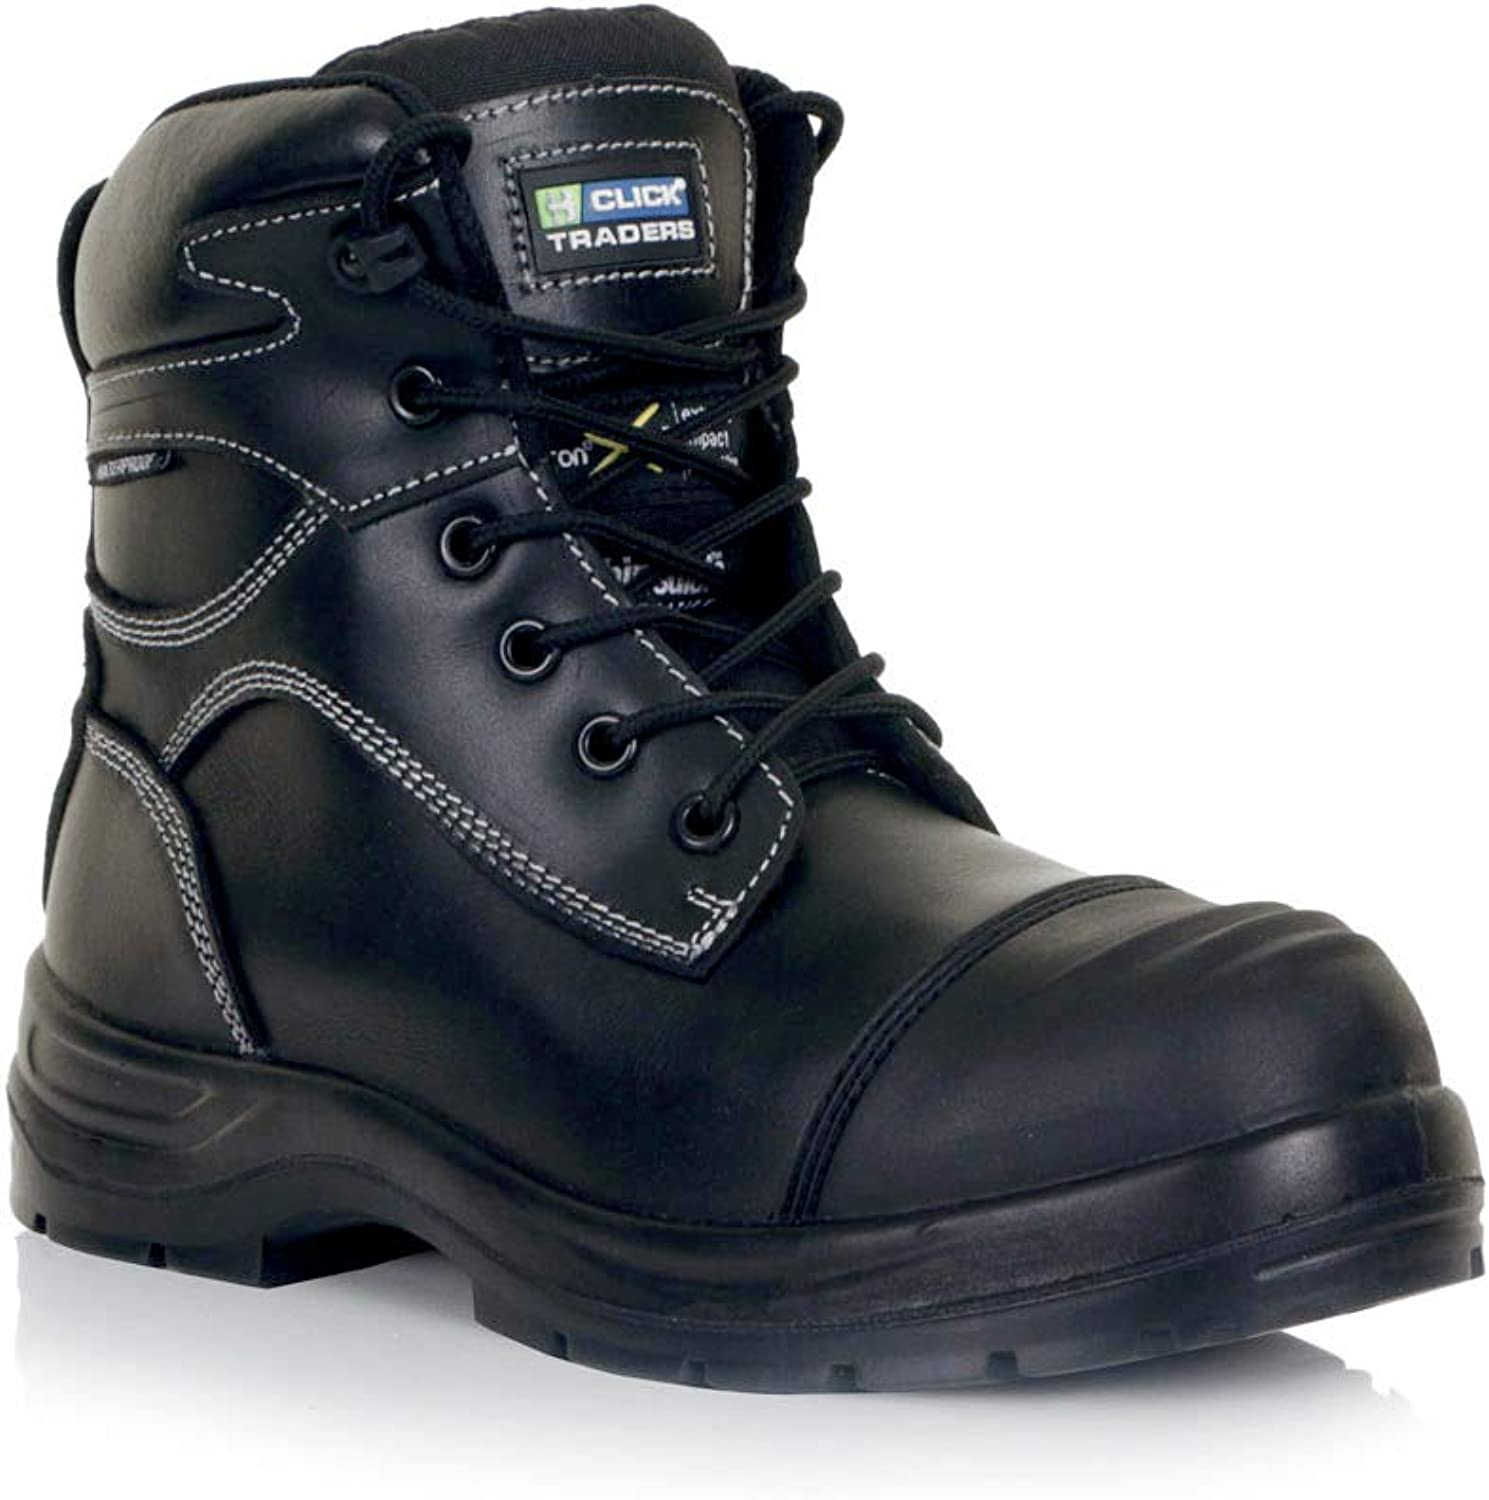 CLICK TRENCHER BOOT BL 06 39